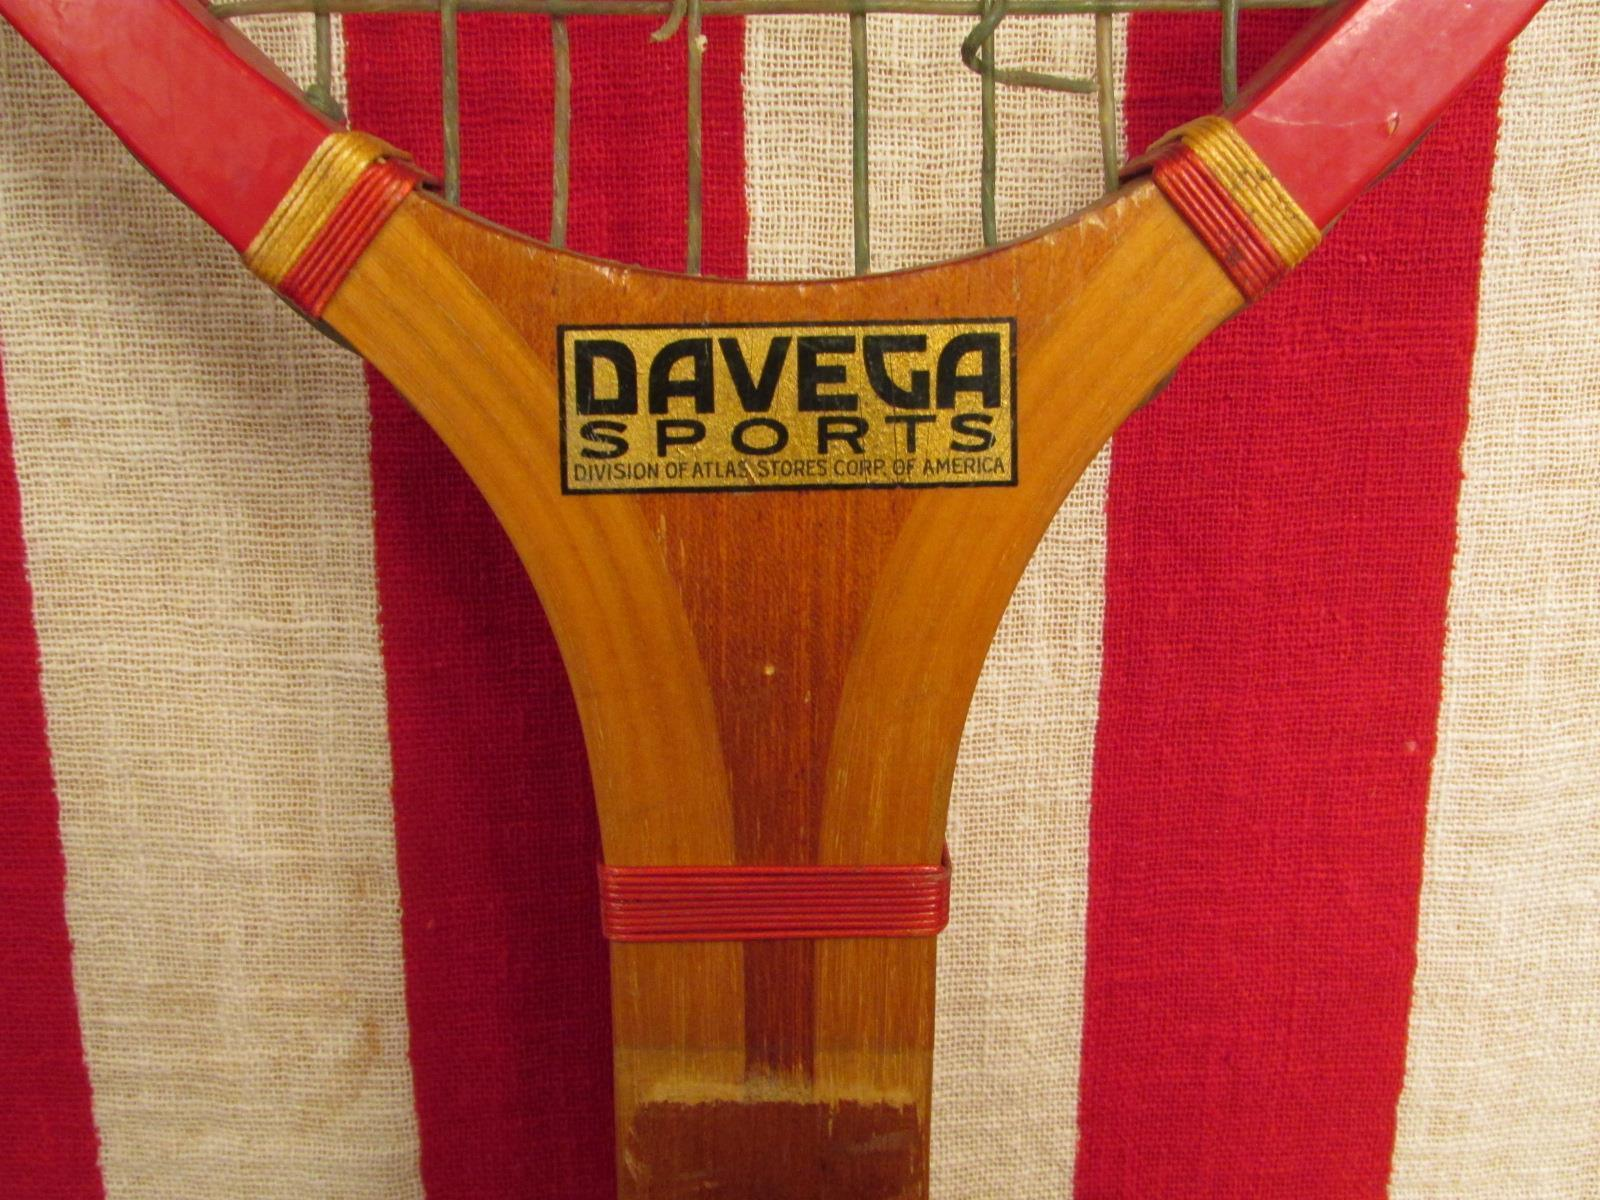 Vintage 1940s Lenox Wood Tennis Racquet E.Kent Co. Great Display! Display! Display! Davega Sports 0794b4